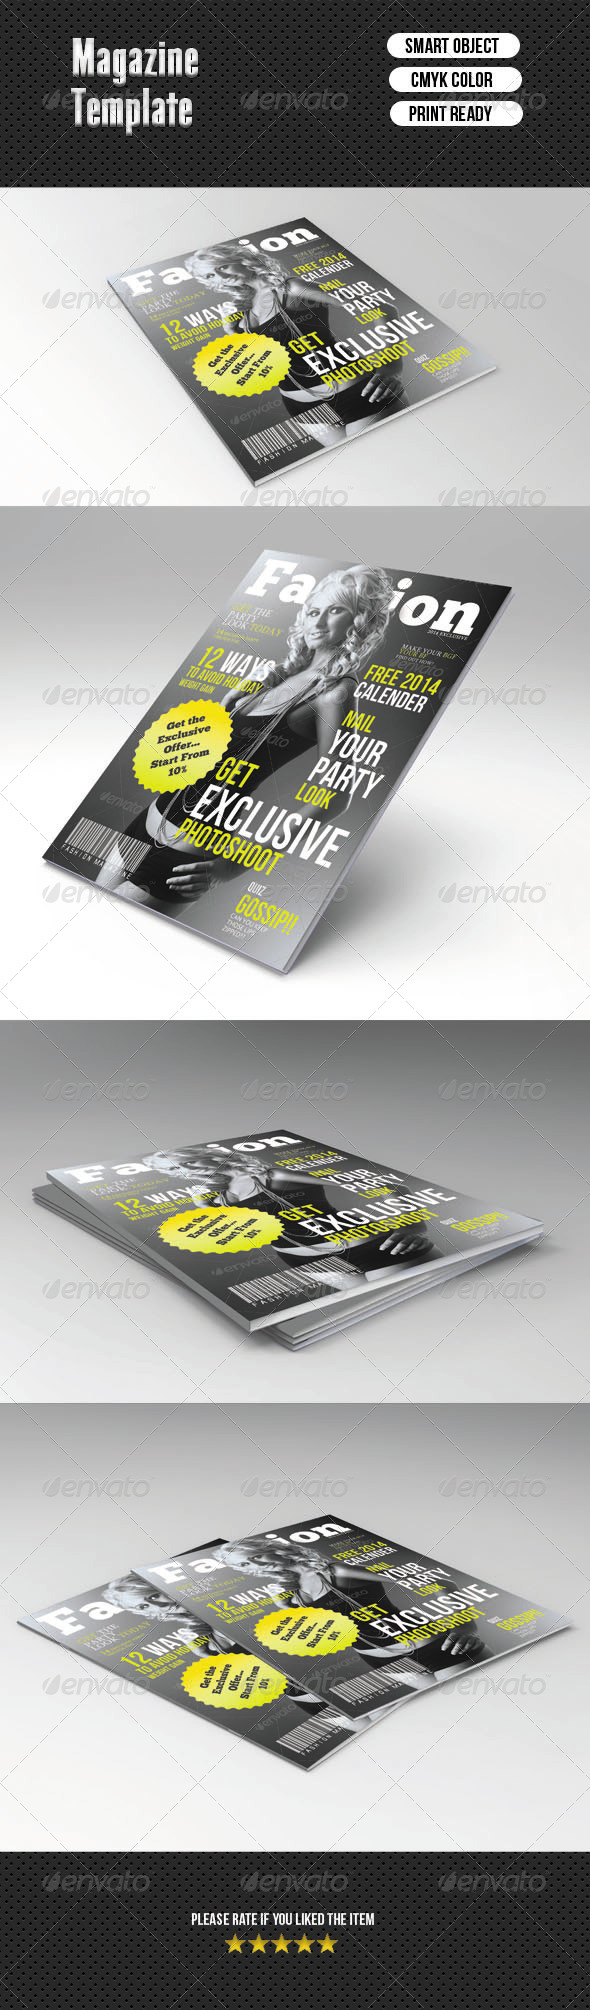 GraphicRiver Magazine Cover Template 6903199